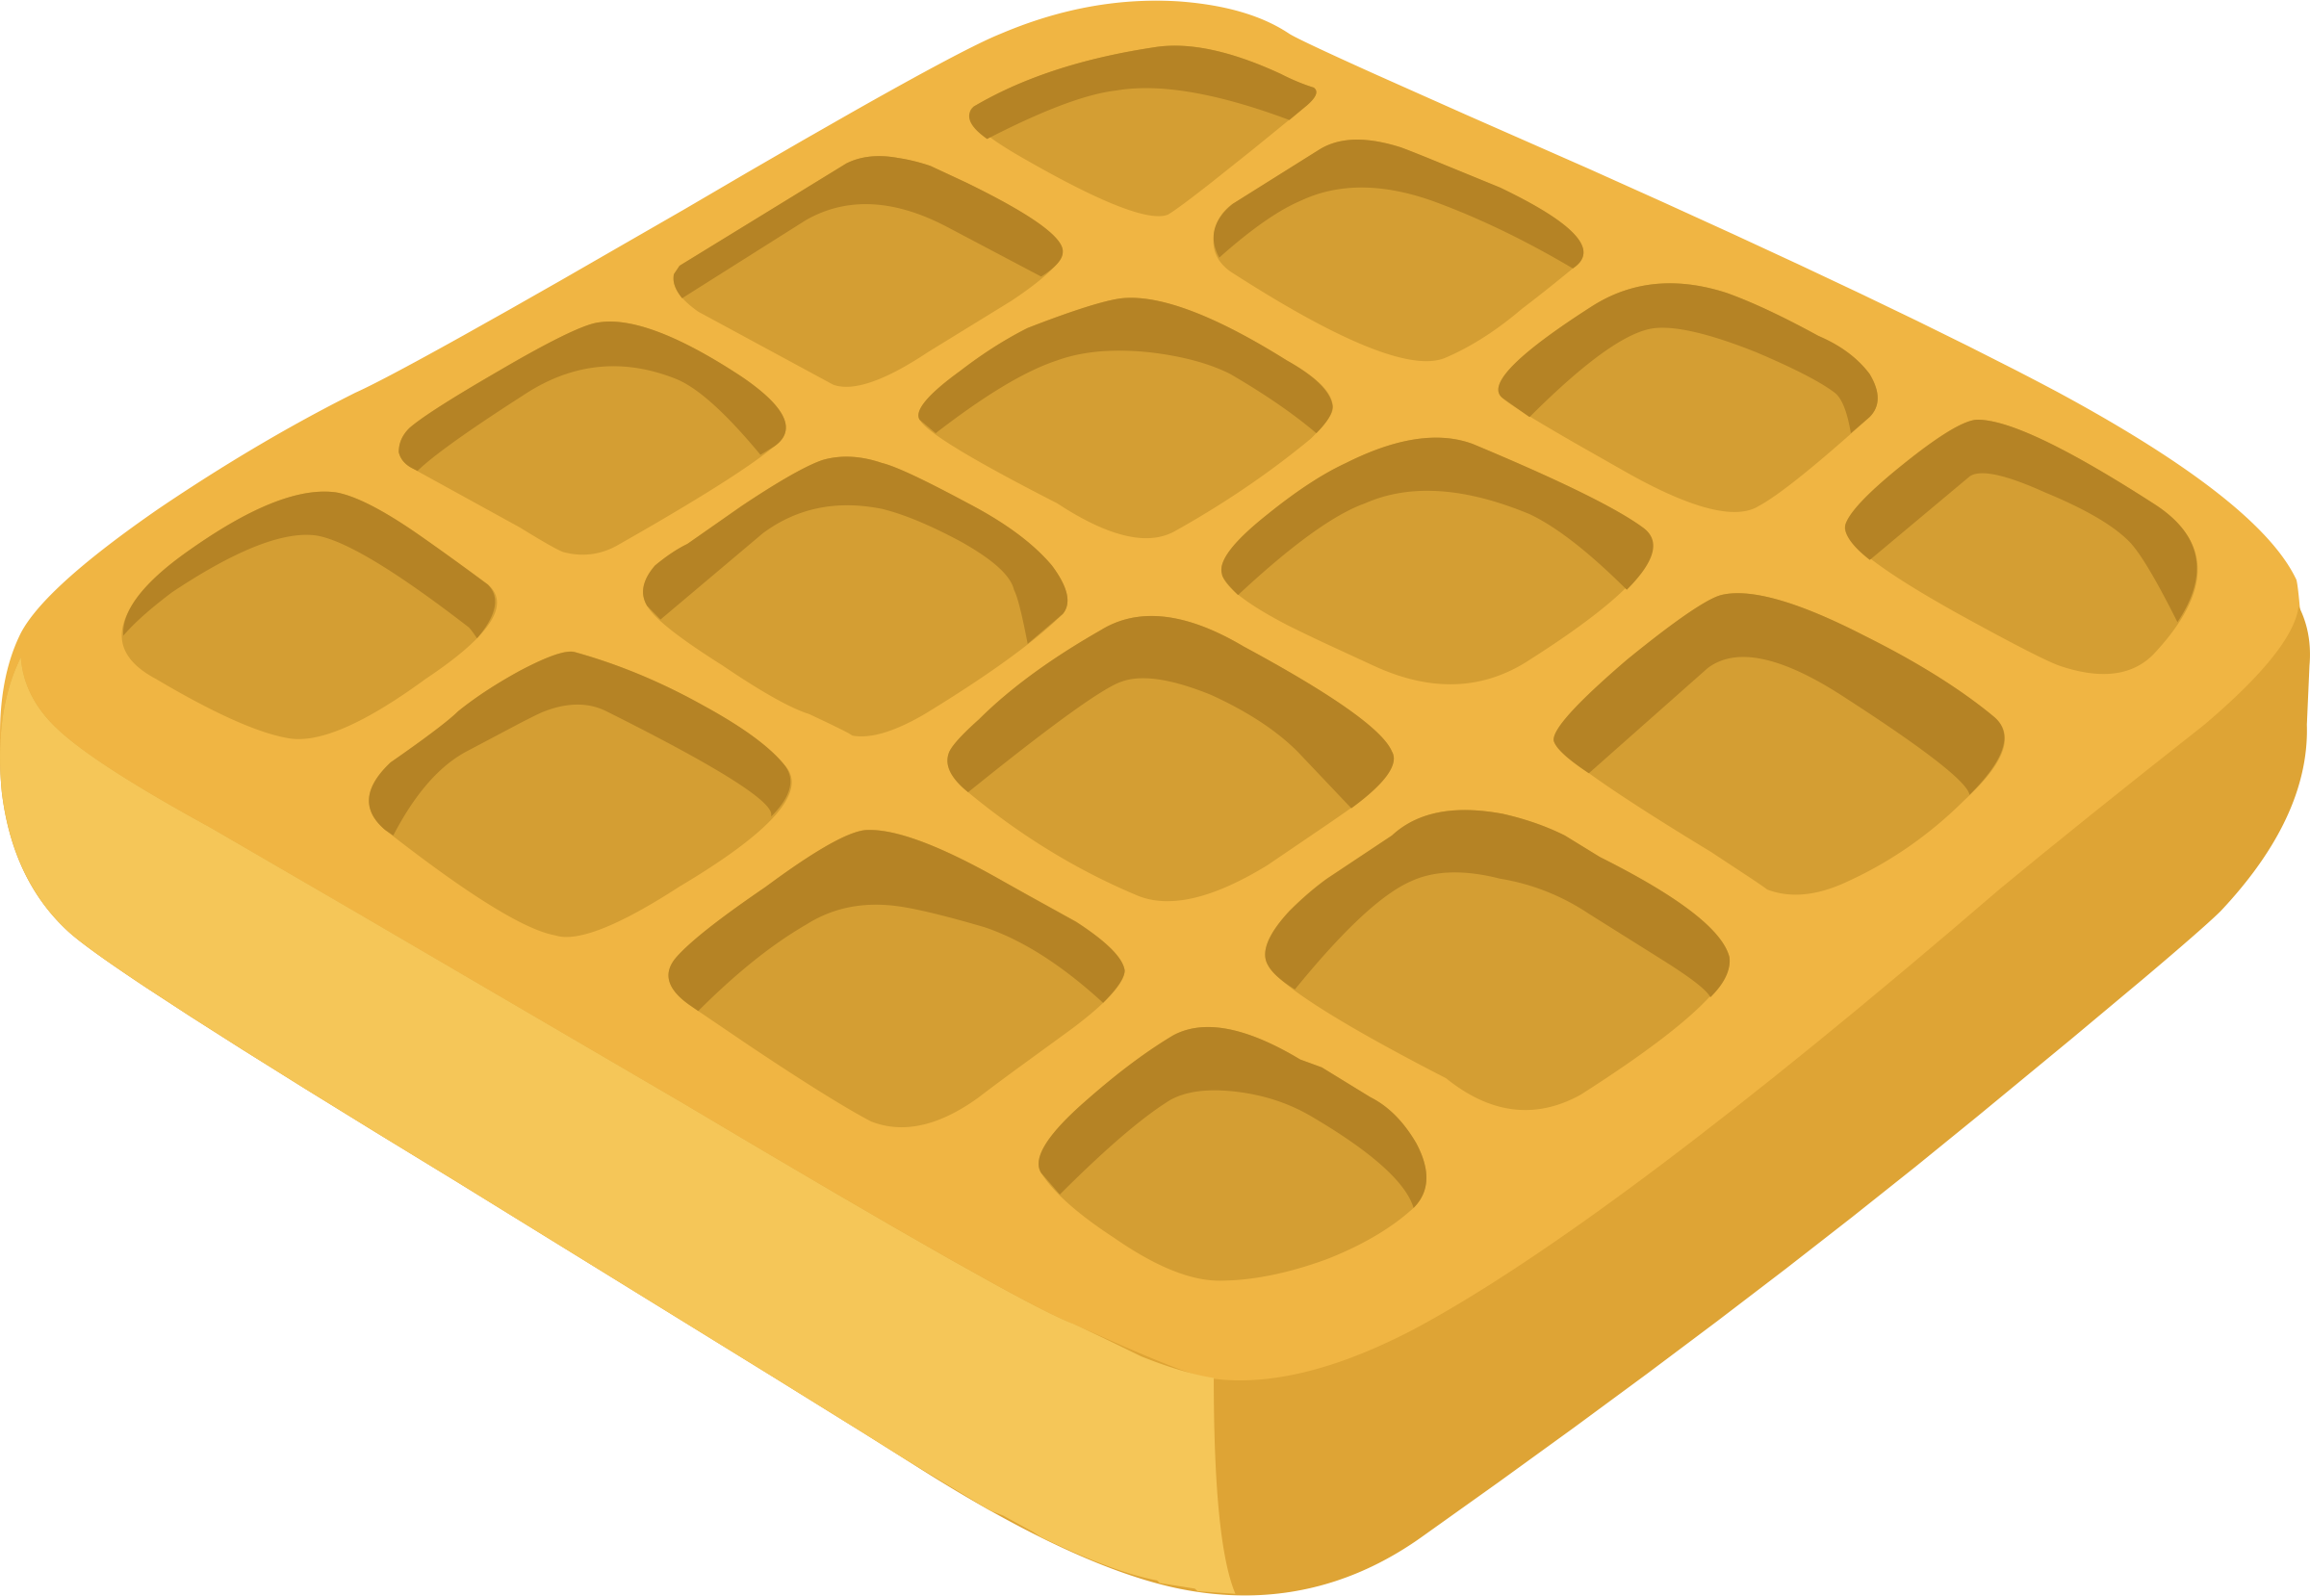 Waffles clipart face. Food by glitch this